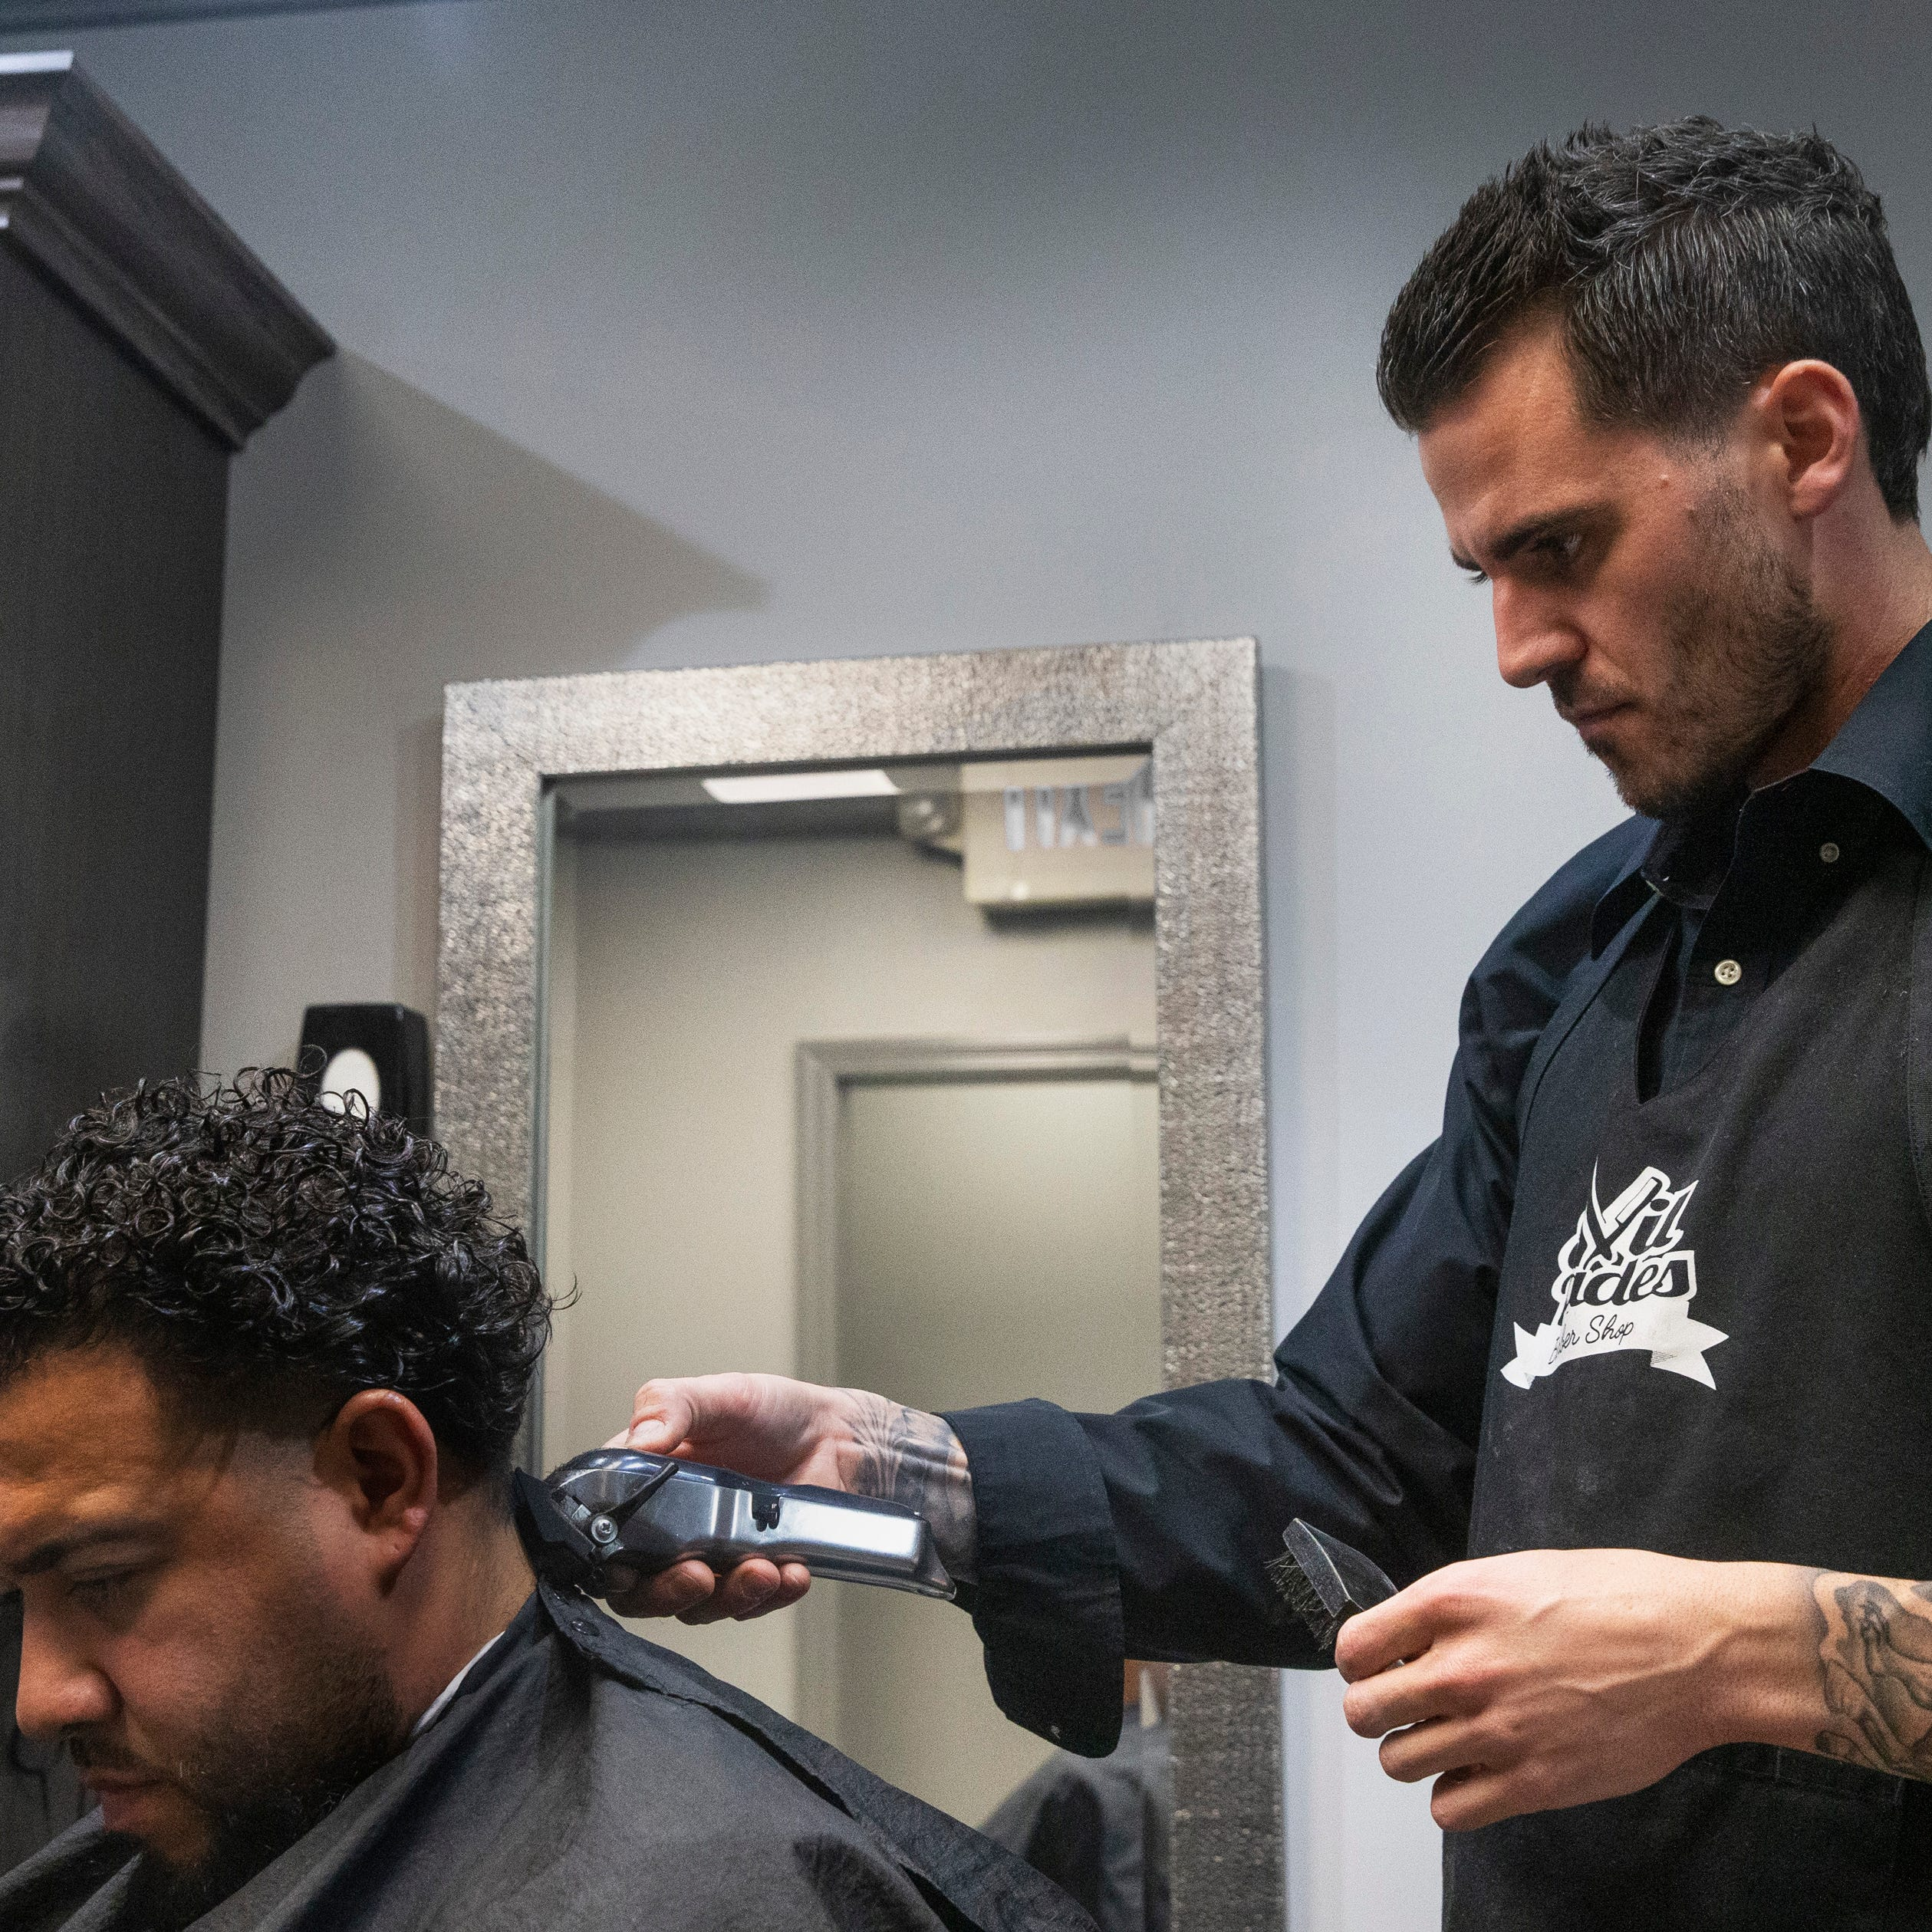 Evil Fades in Millstone, Red Bank is the result of barber's big dreams